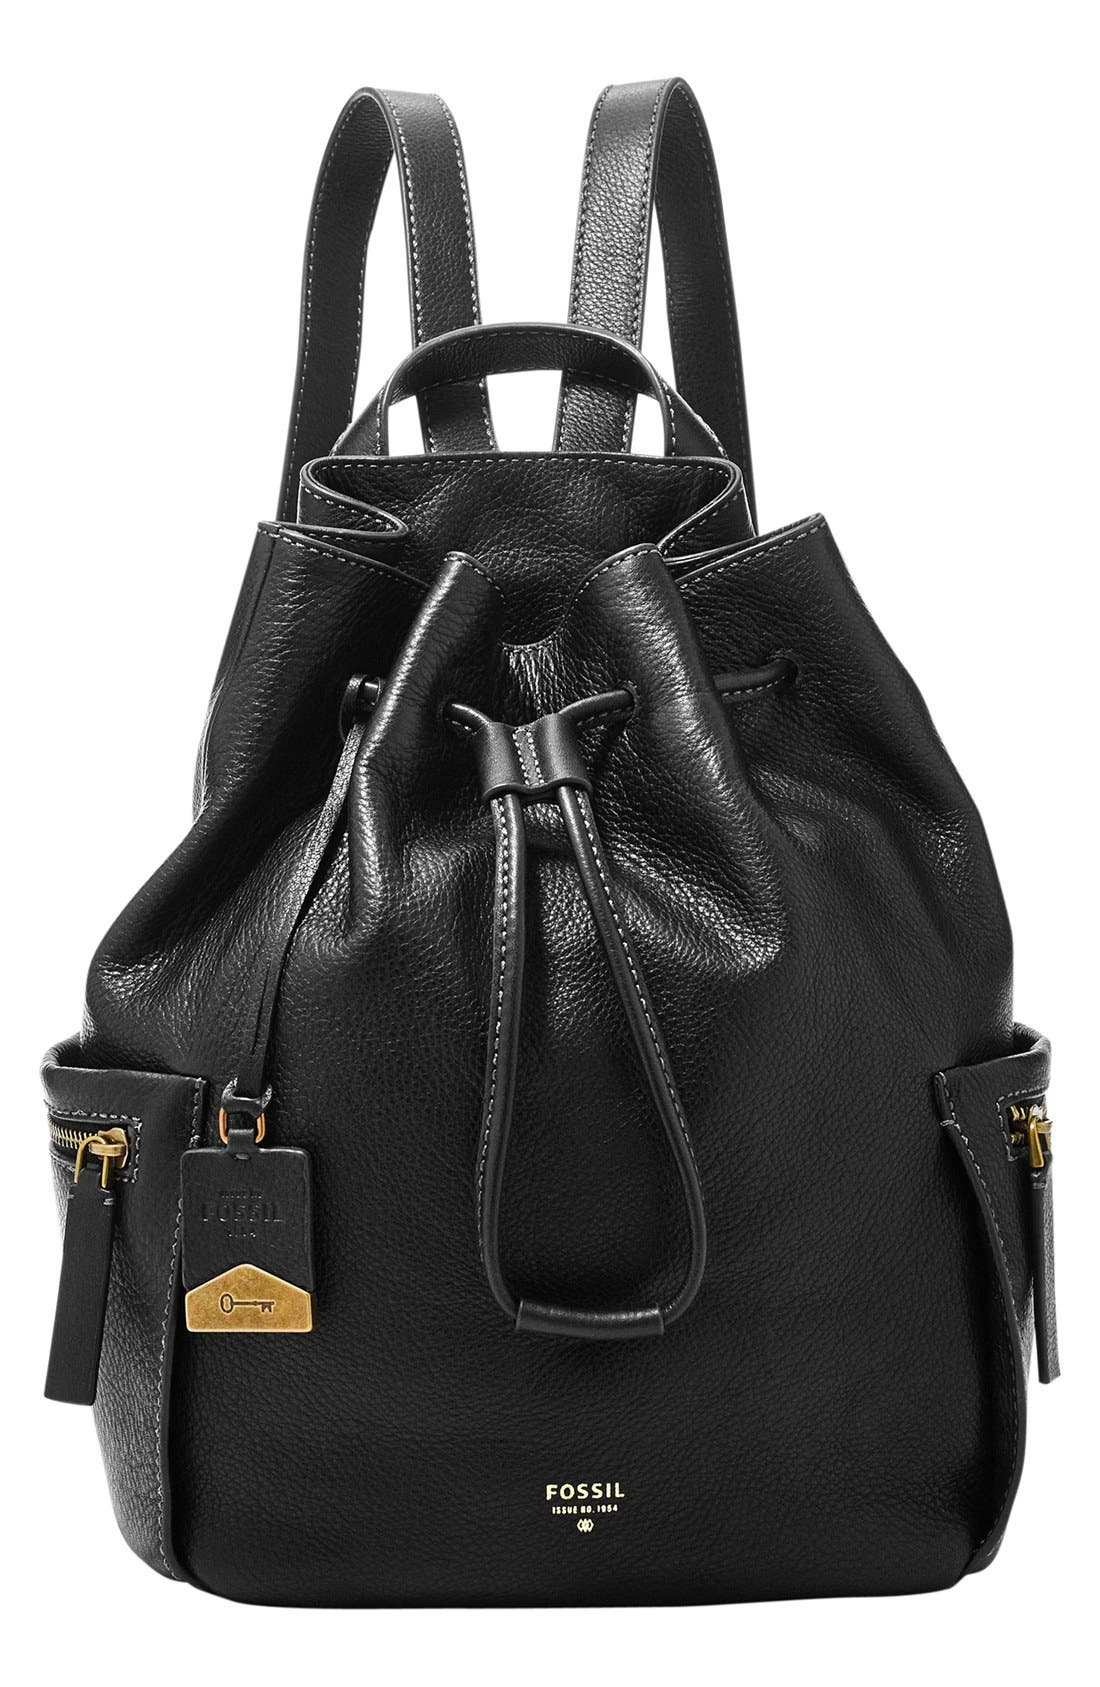 Main Image - Fossil 'Vickery - Large' Drawstring Leather Backpack